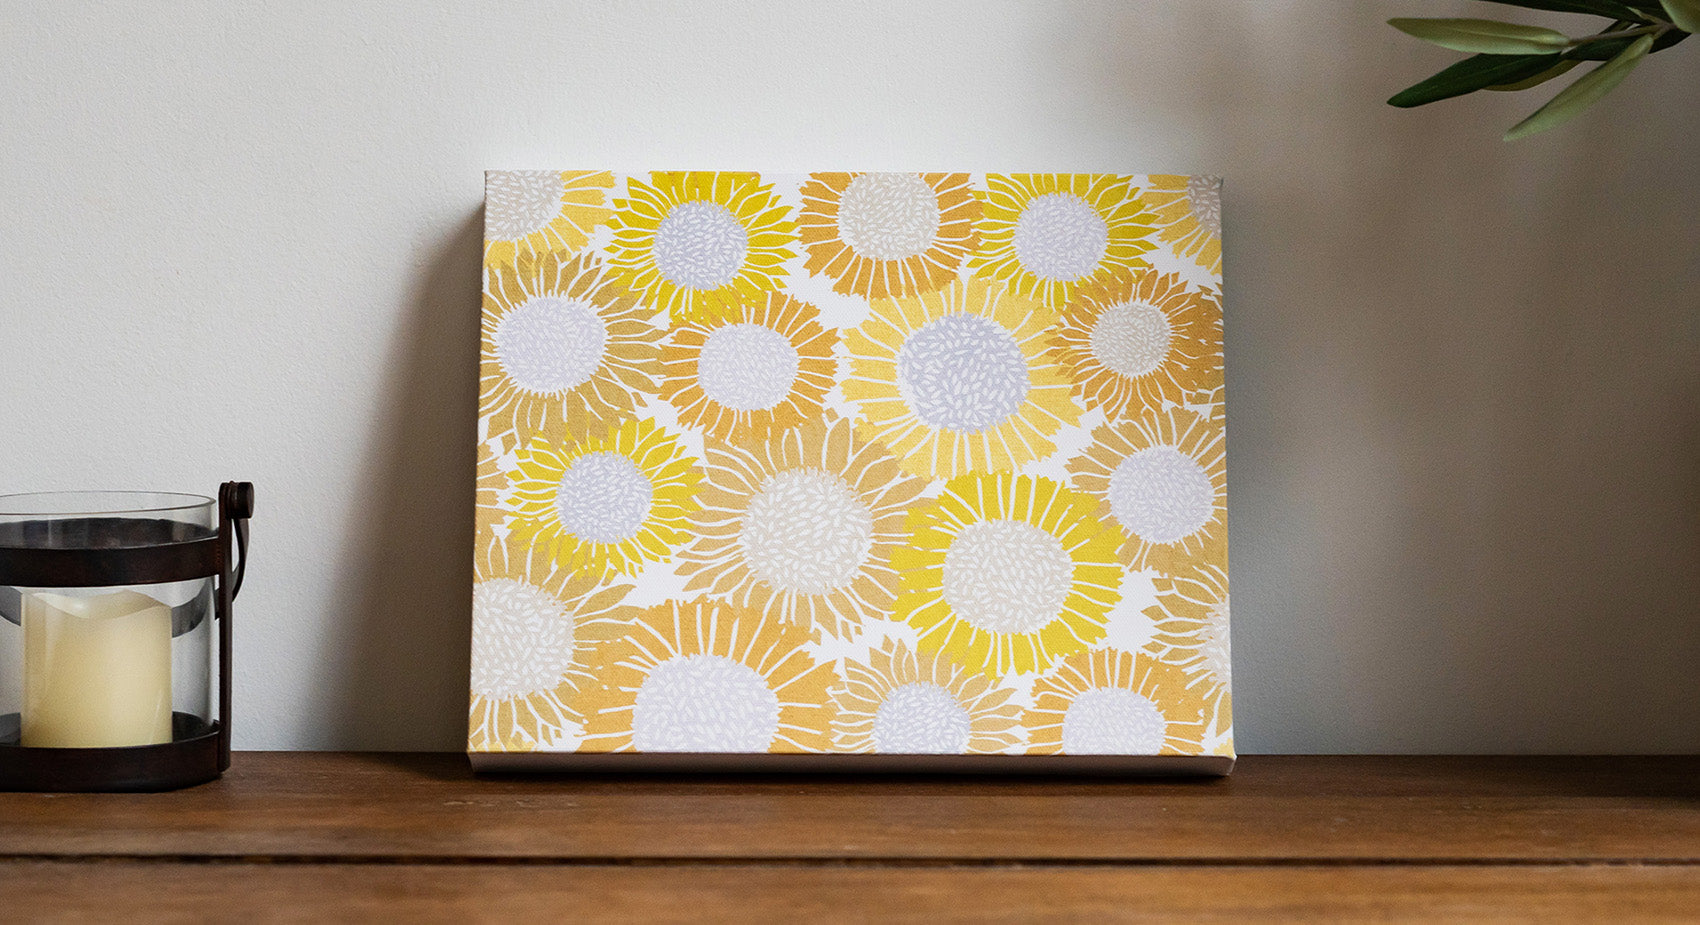 New Product Alert: Wrapped Canvases!